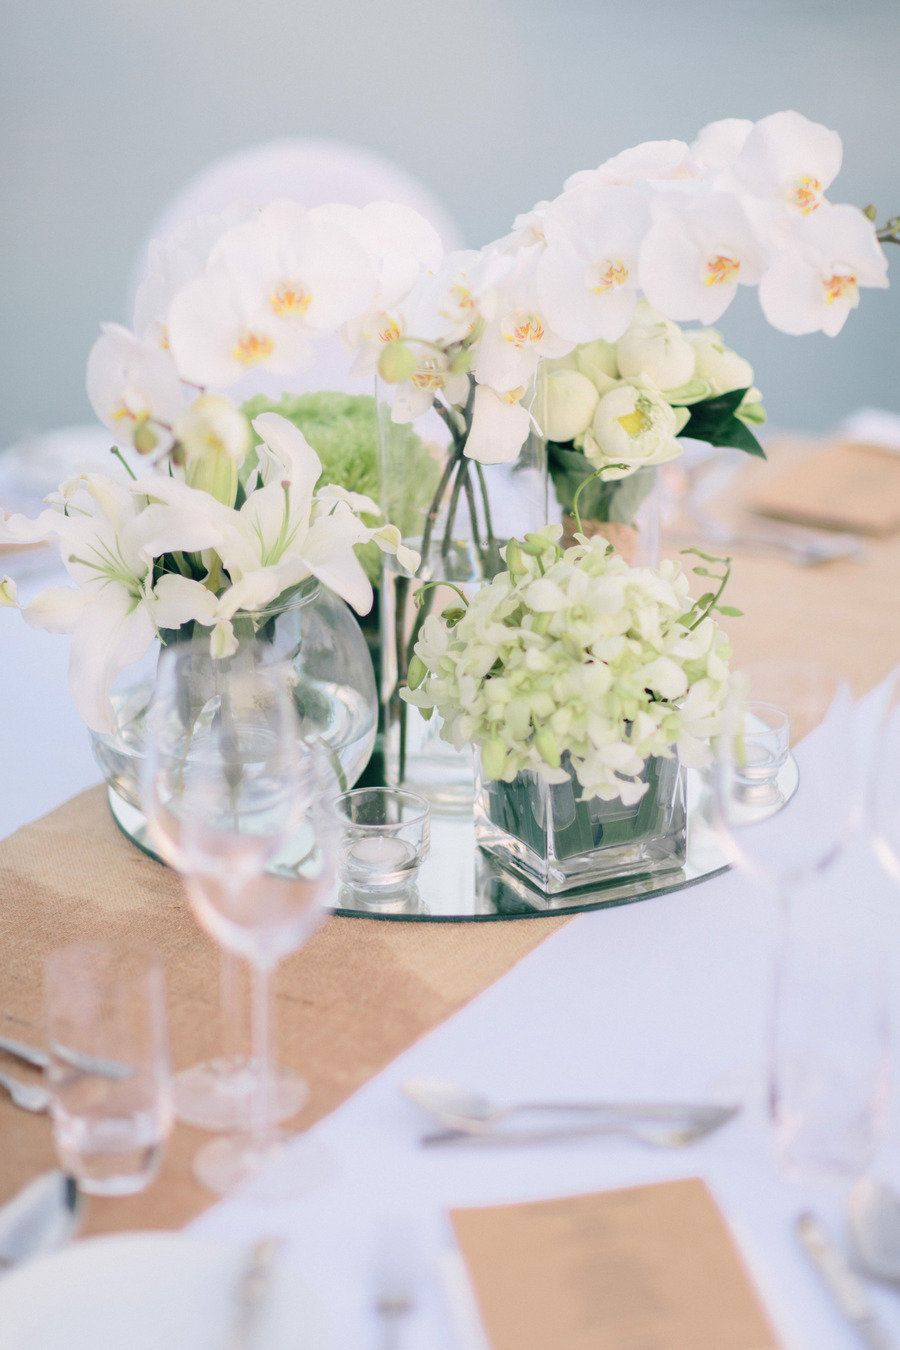 Thailand Wedding from Corbin Gurkin | Mirror plates, Thailand ...